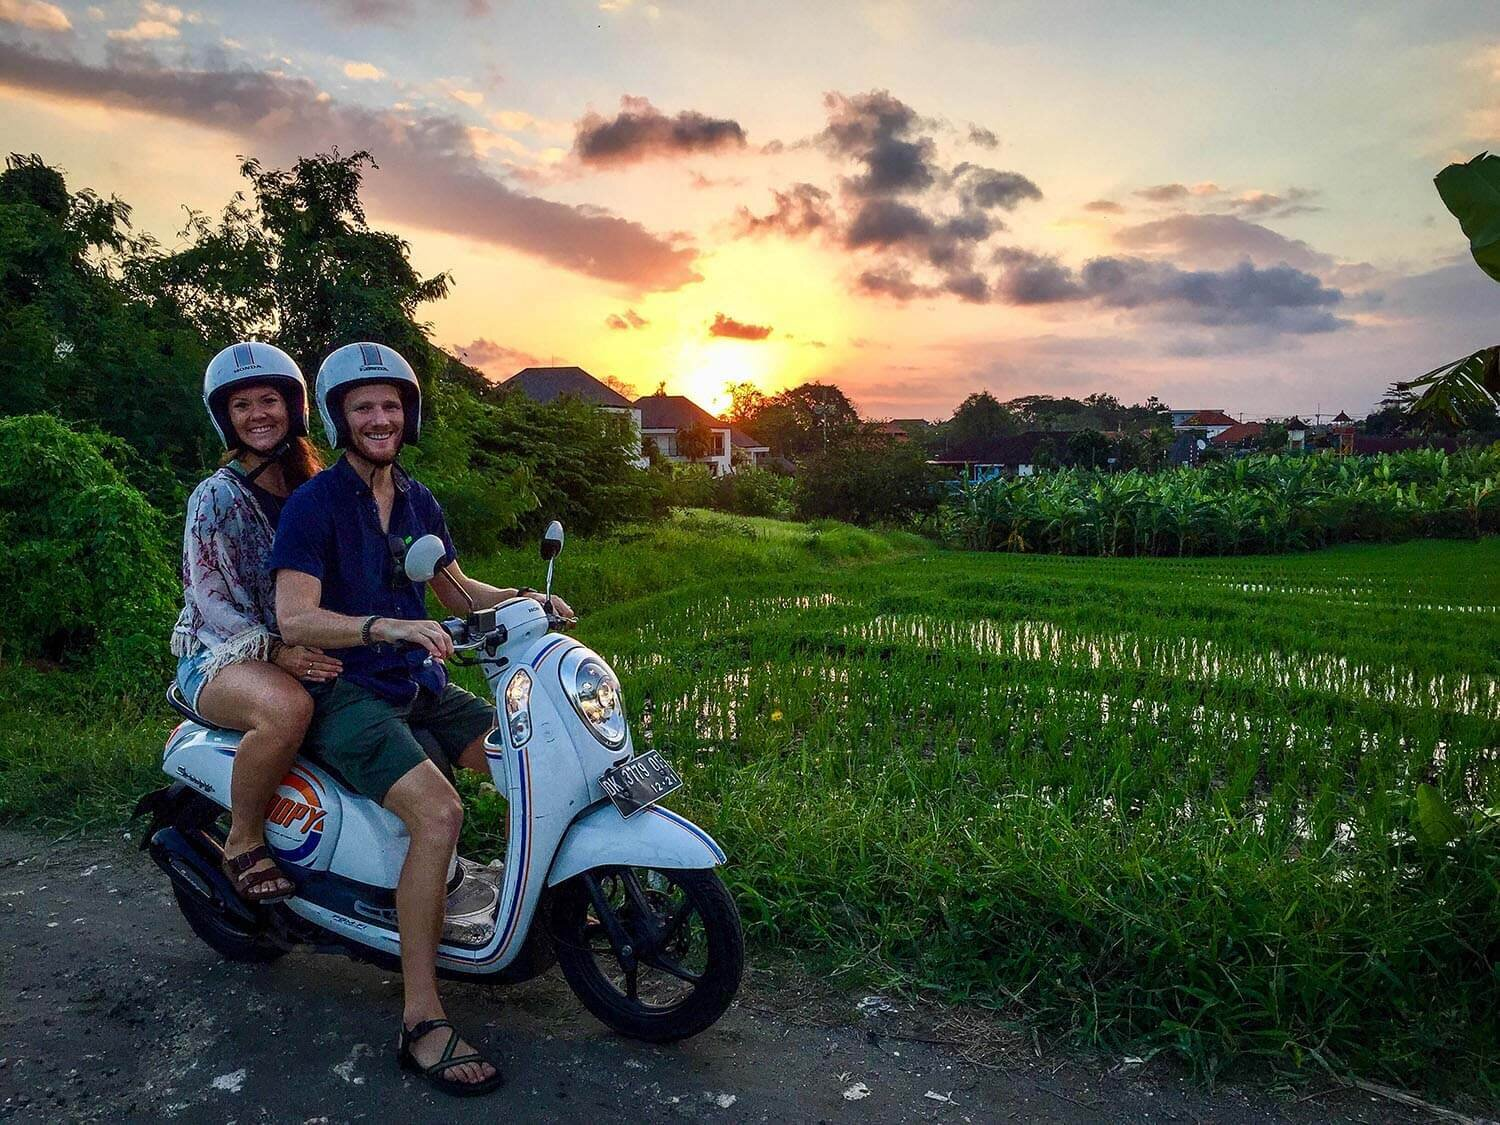 Travel Insurance Comparison: Which is the Best Policy for You?